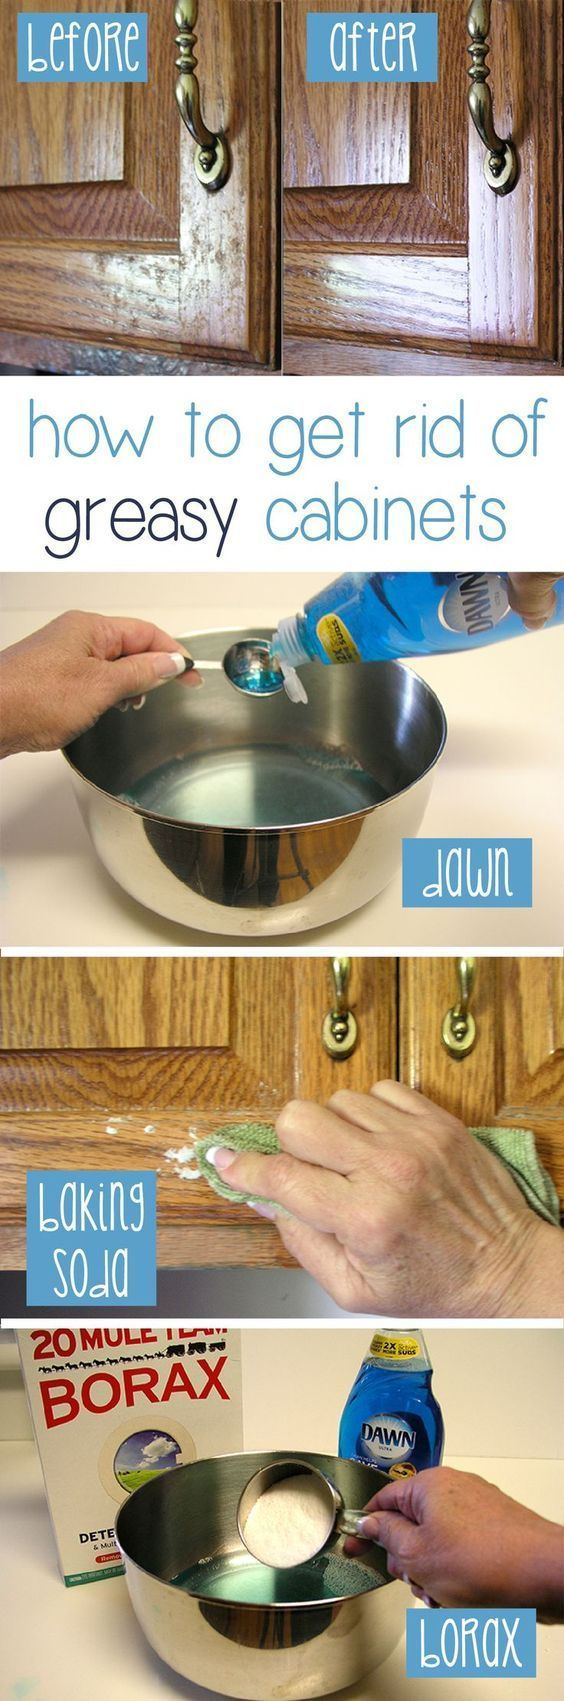 No more greasy cabinets! Here are a few different solutions that can help you get your kitchen cabinets squeaky clean:  http://www.ehow.com/how_4778378_clean-grease-kitchen-cabinet-doors.html?utm_source=pinterest&utm_medium=fanpage&utm_content=inline&crlt.pid=camp.mPtpNmKeuhgM&crlt.pid=camp.CPoVng9oiIod